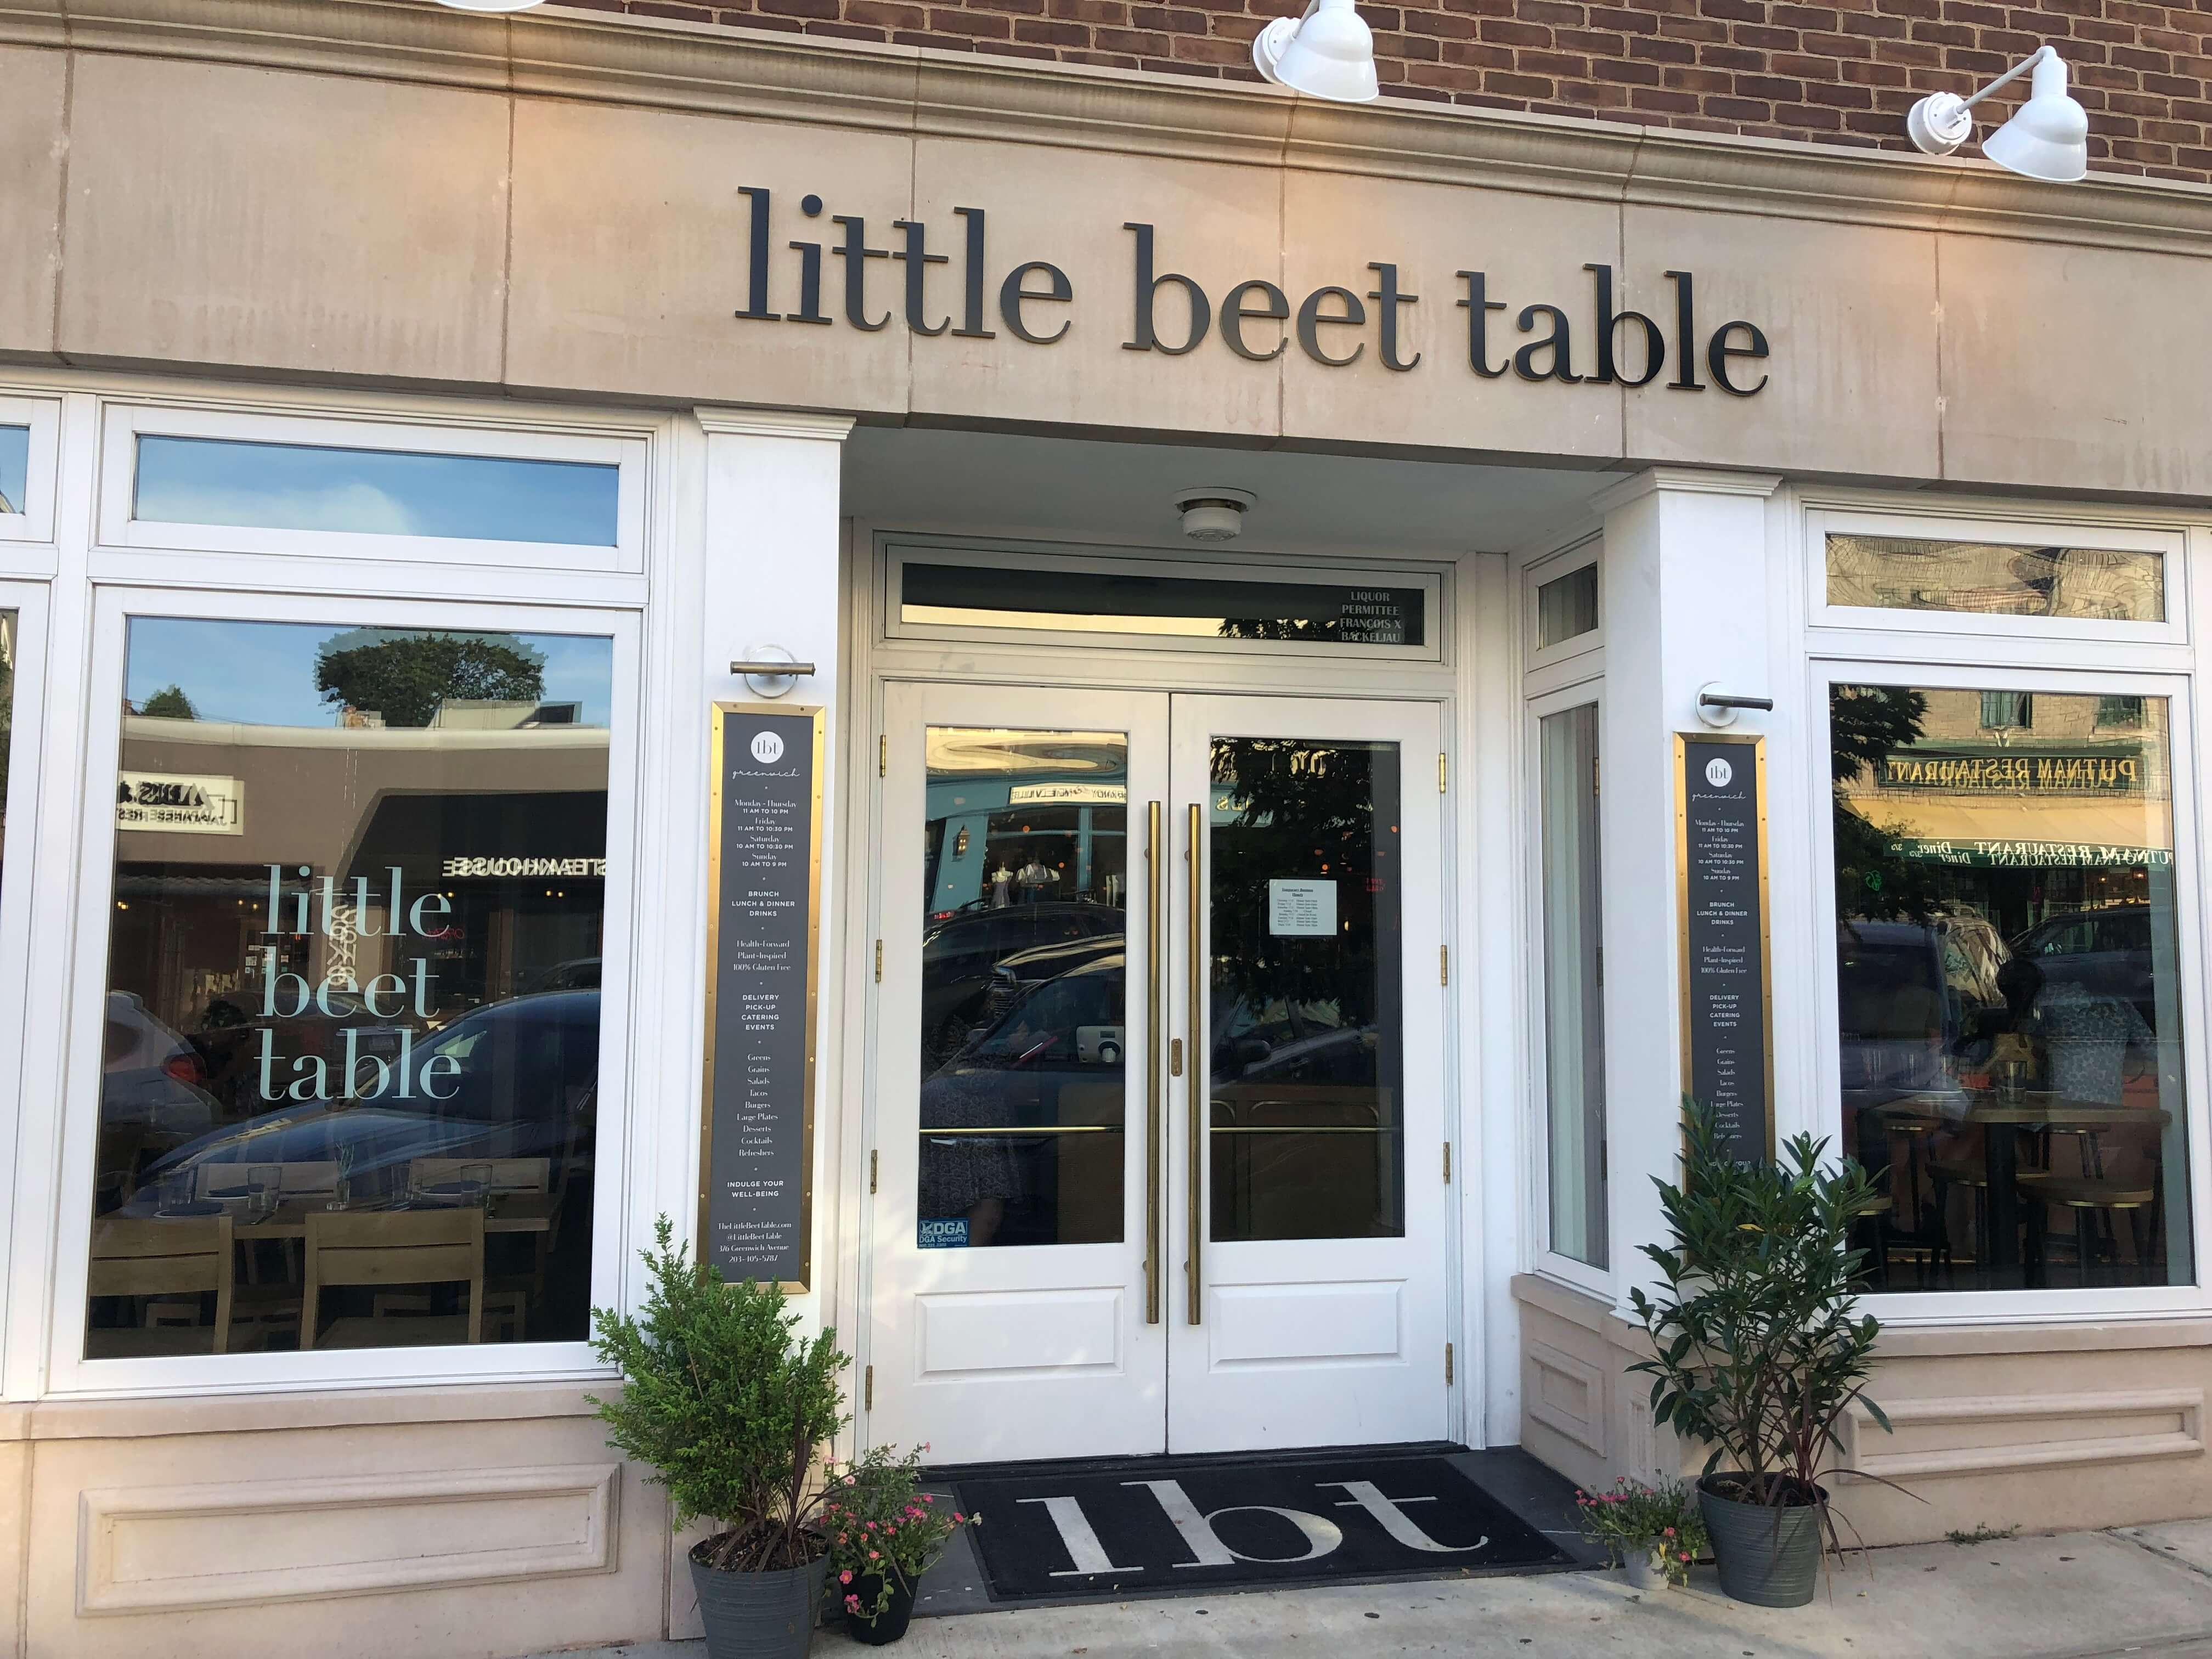 Little Beet Table: A Gluten-Free Eatery Expands to Greenwich